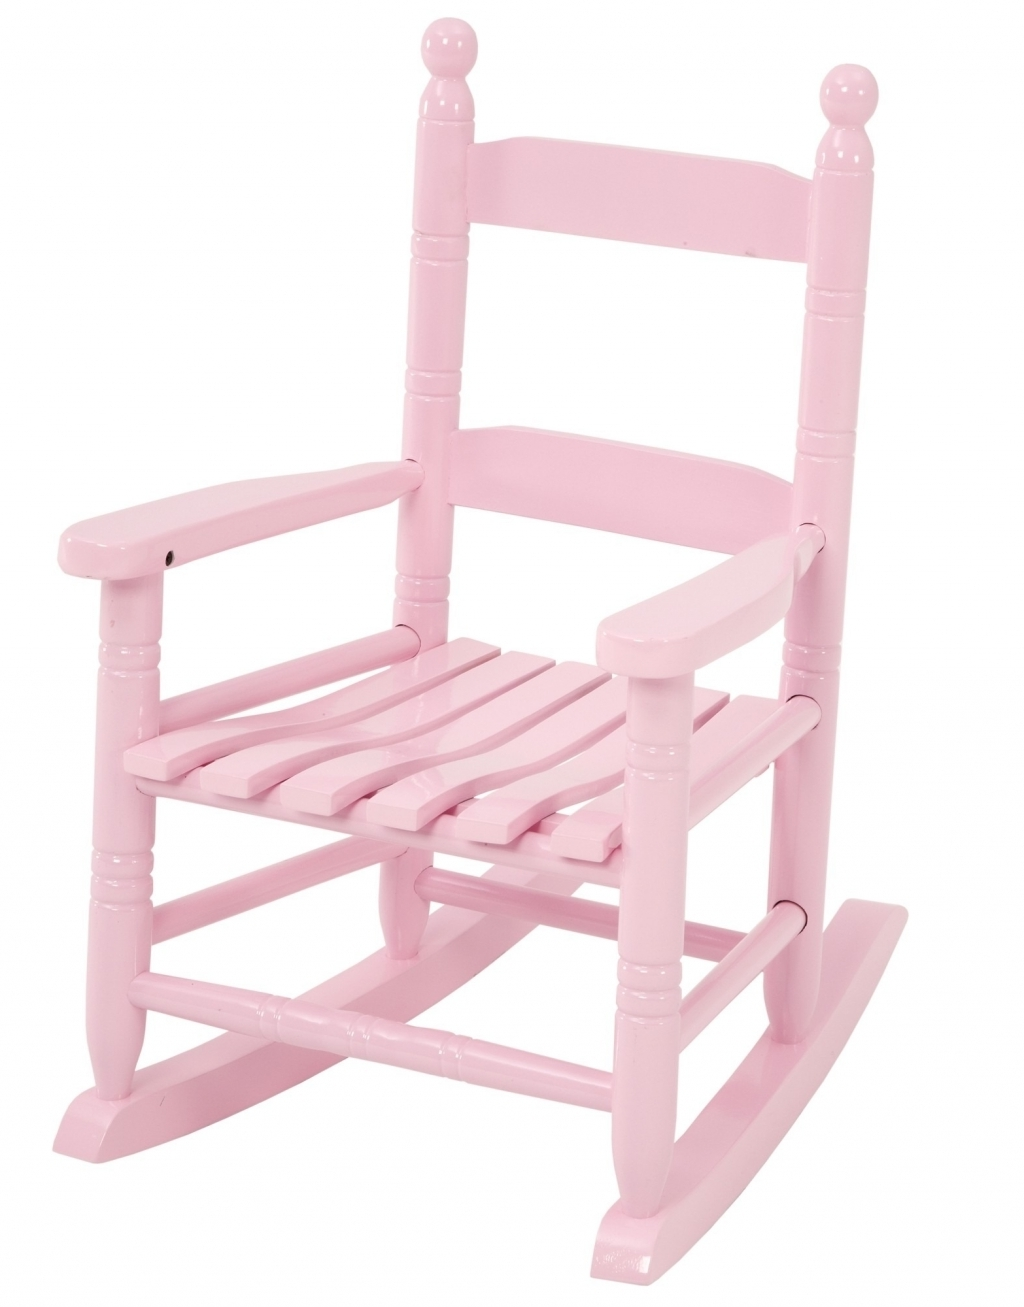 Rocking Chairs For Toddlers With Regard To Well Liked Furniture: Childrens Rocking Chairs Luxury Jack Post Pink Childrens (View 9 of 20)